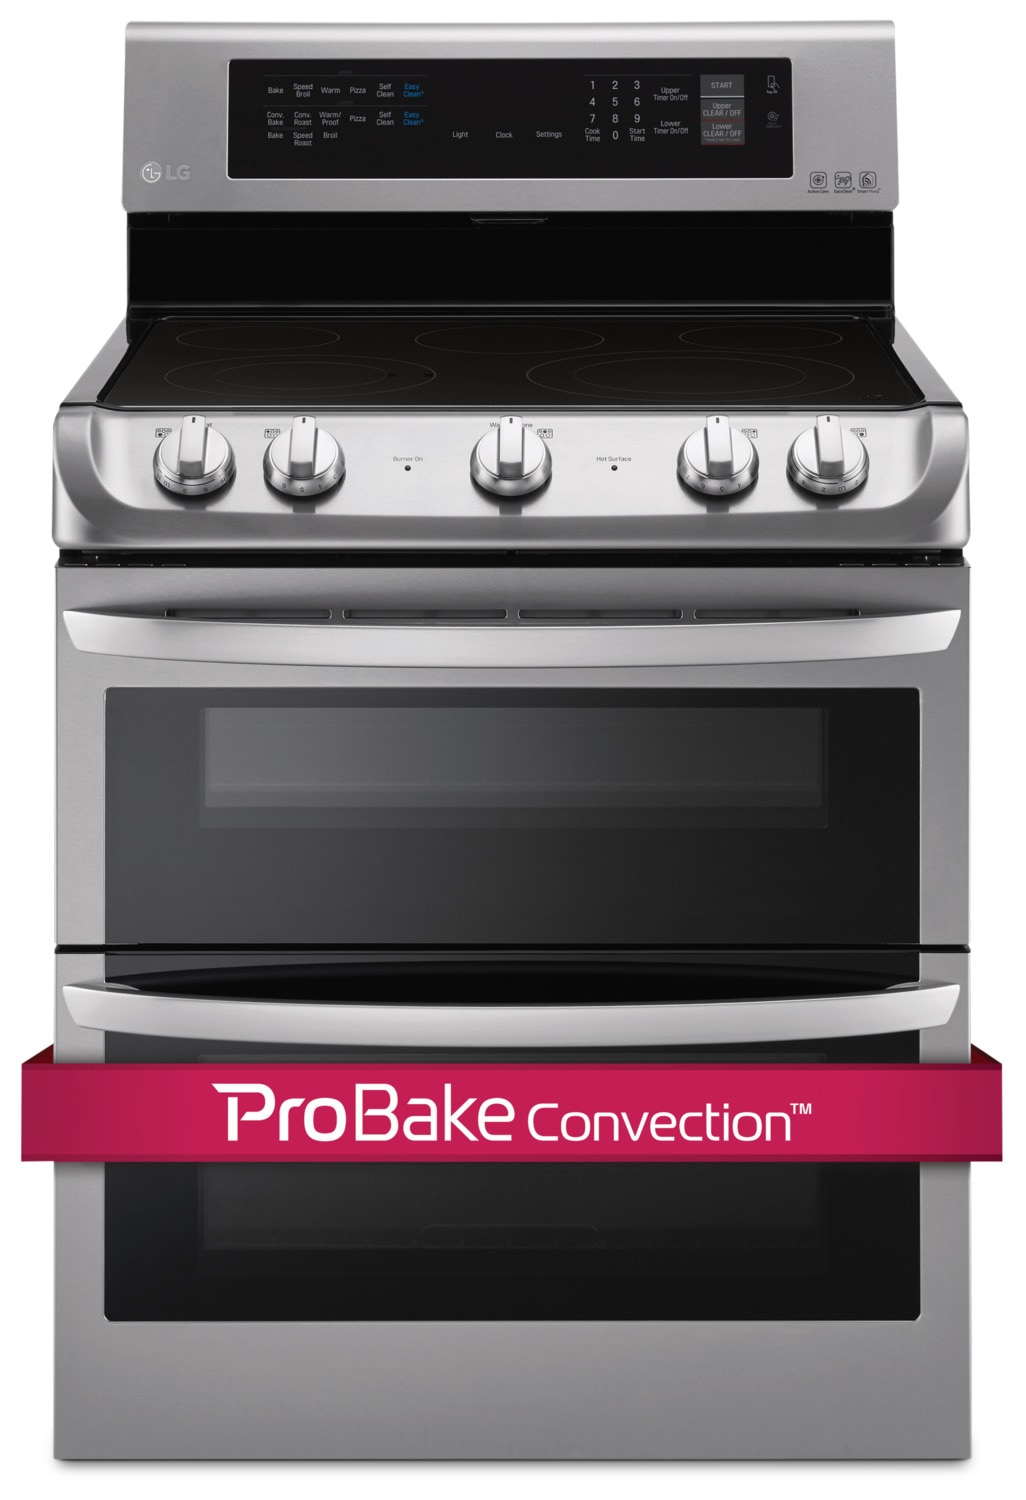 LG Appliances Stainless Steel Freestanding Electric Double Oven Range (7.3 Cu. Ft.) - LDE4413ST